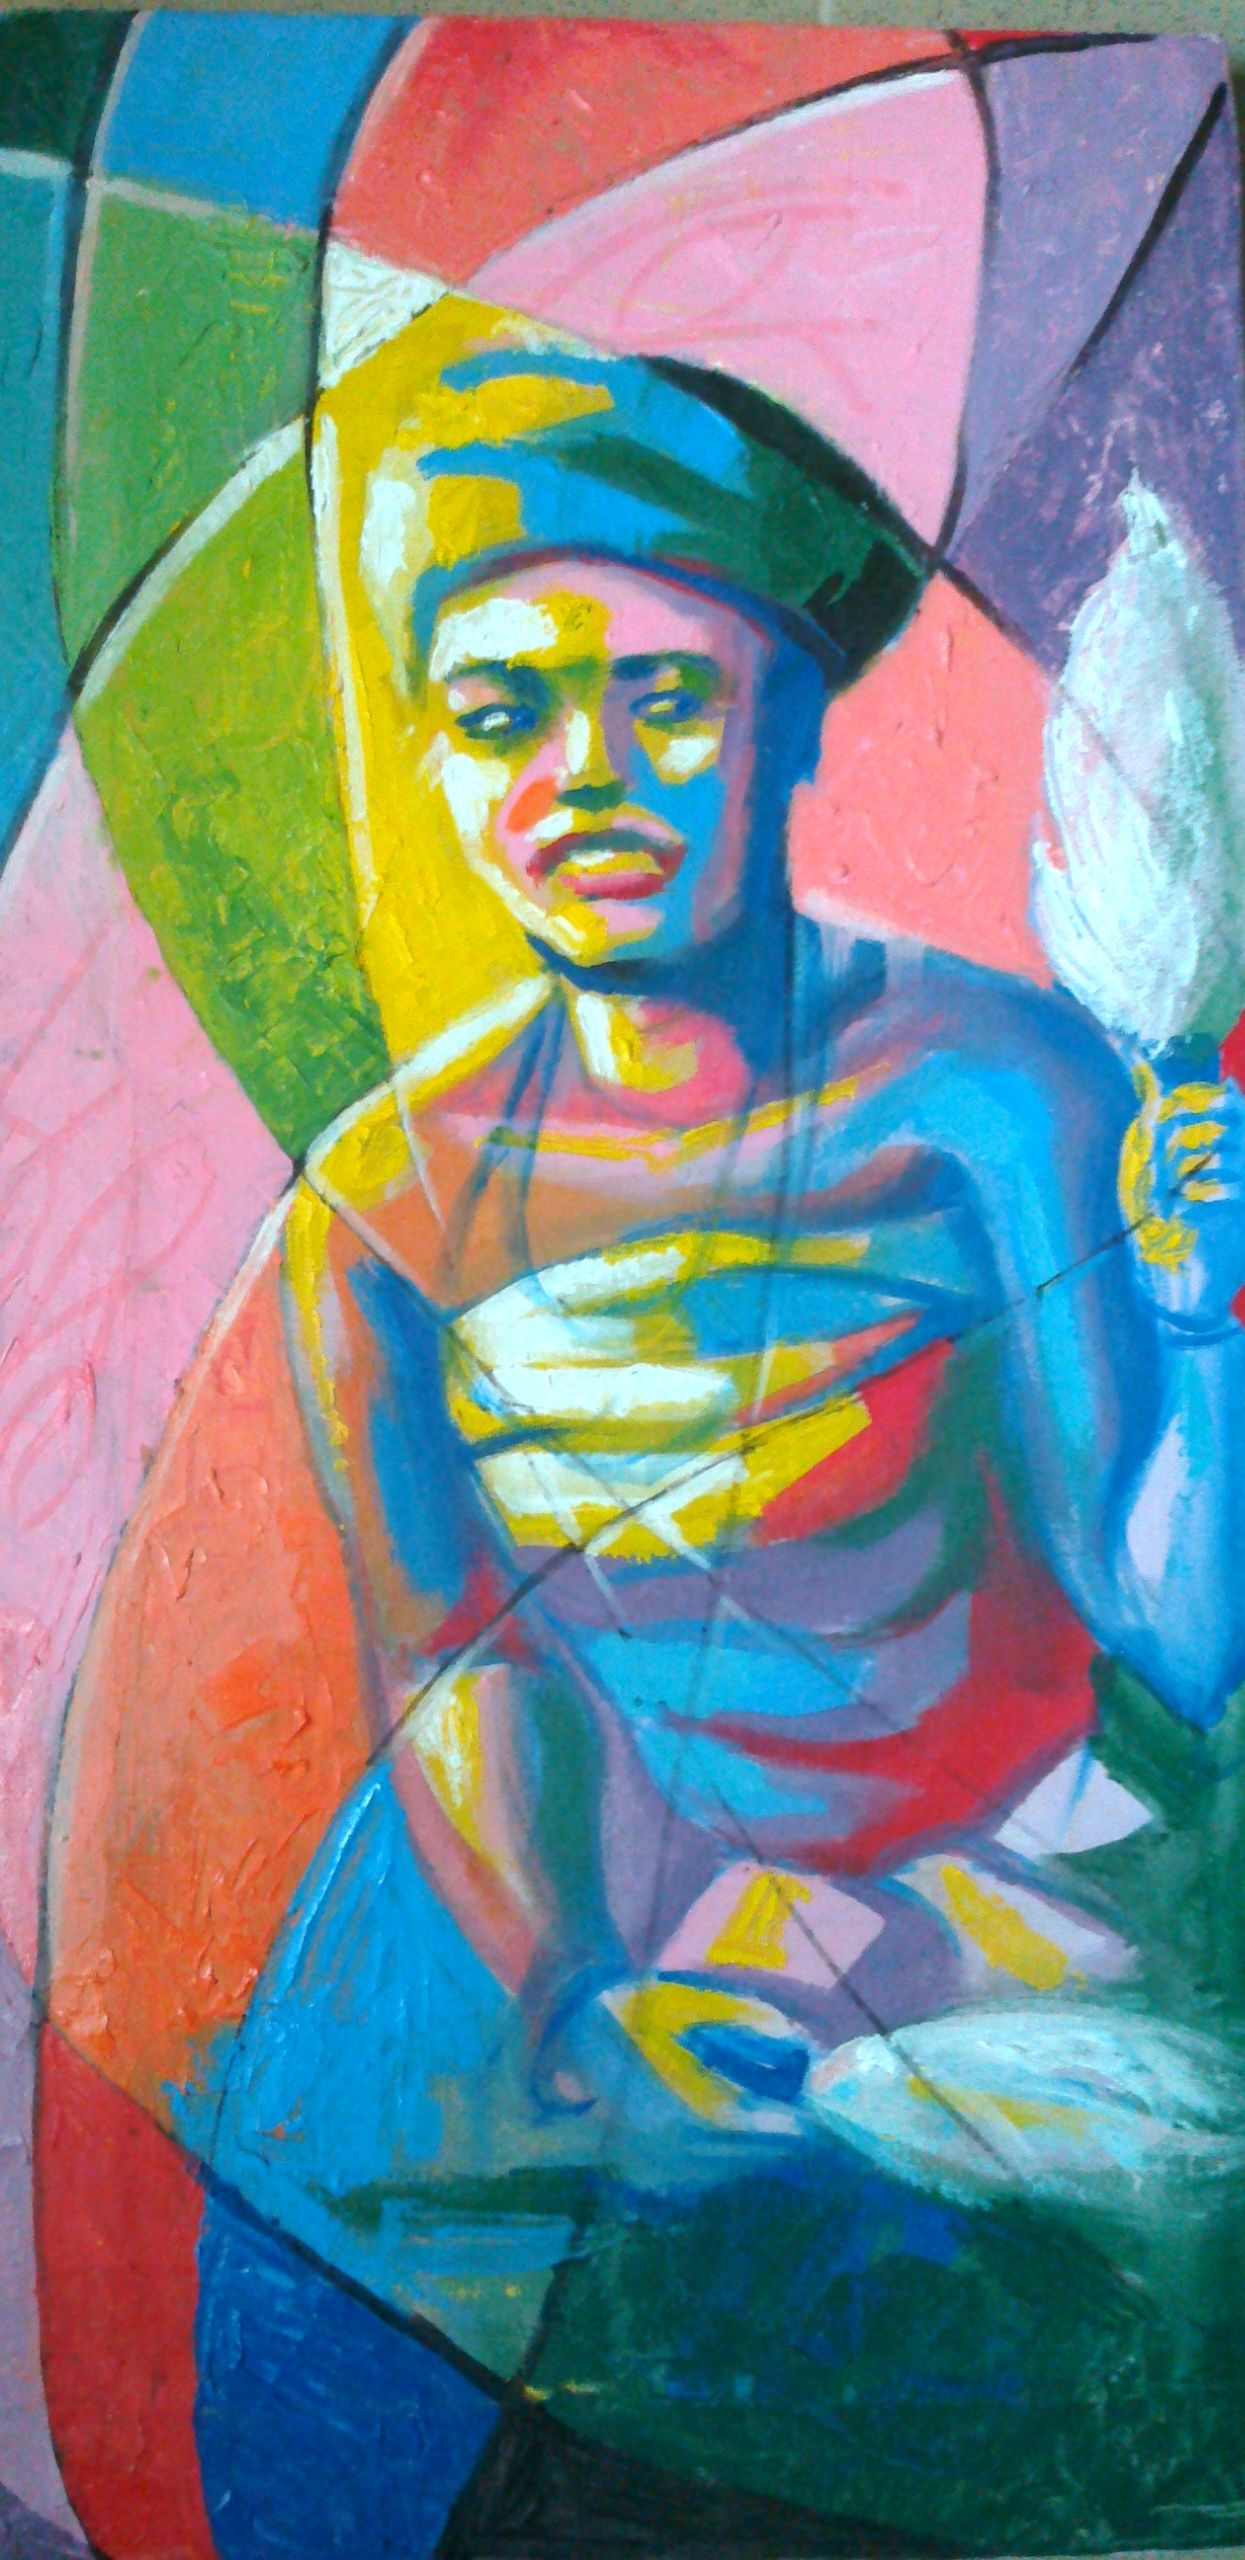 Artworks · art pieces · awizzys uploaded imagespainting by nigerian contemporary artists http www awizzy net